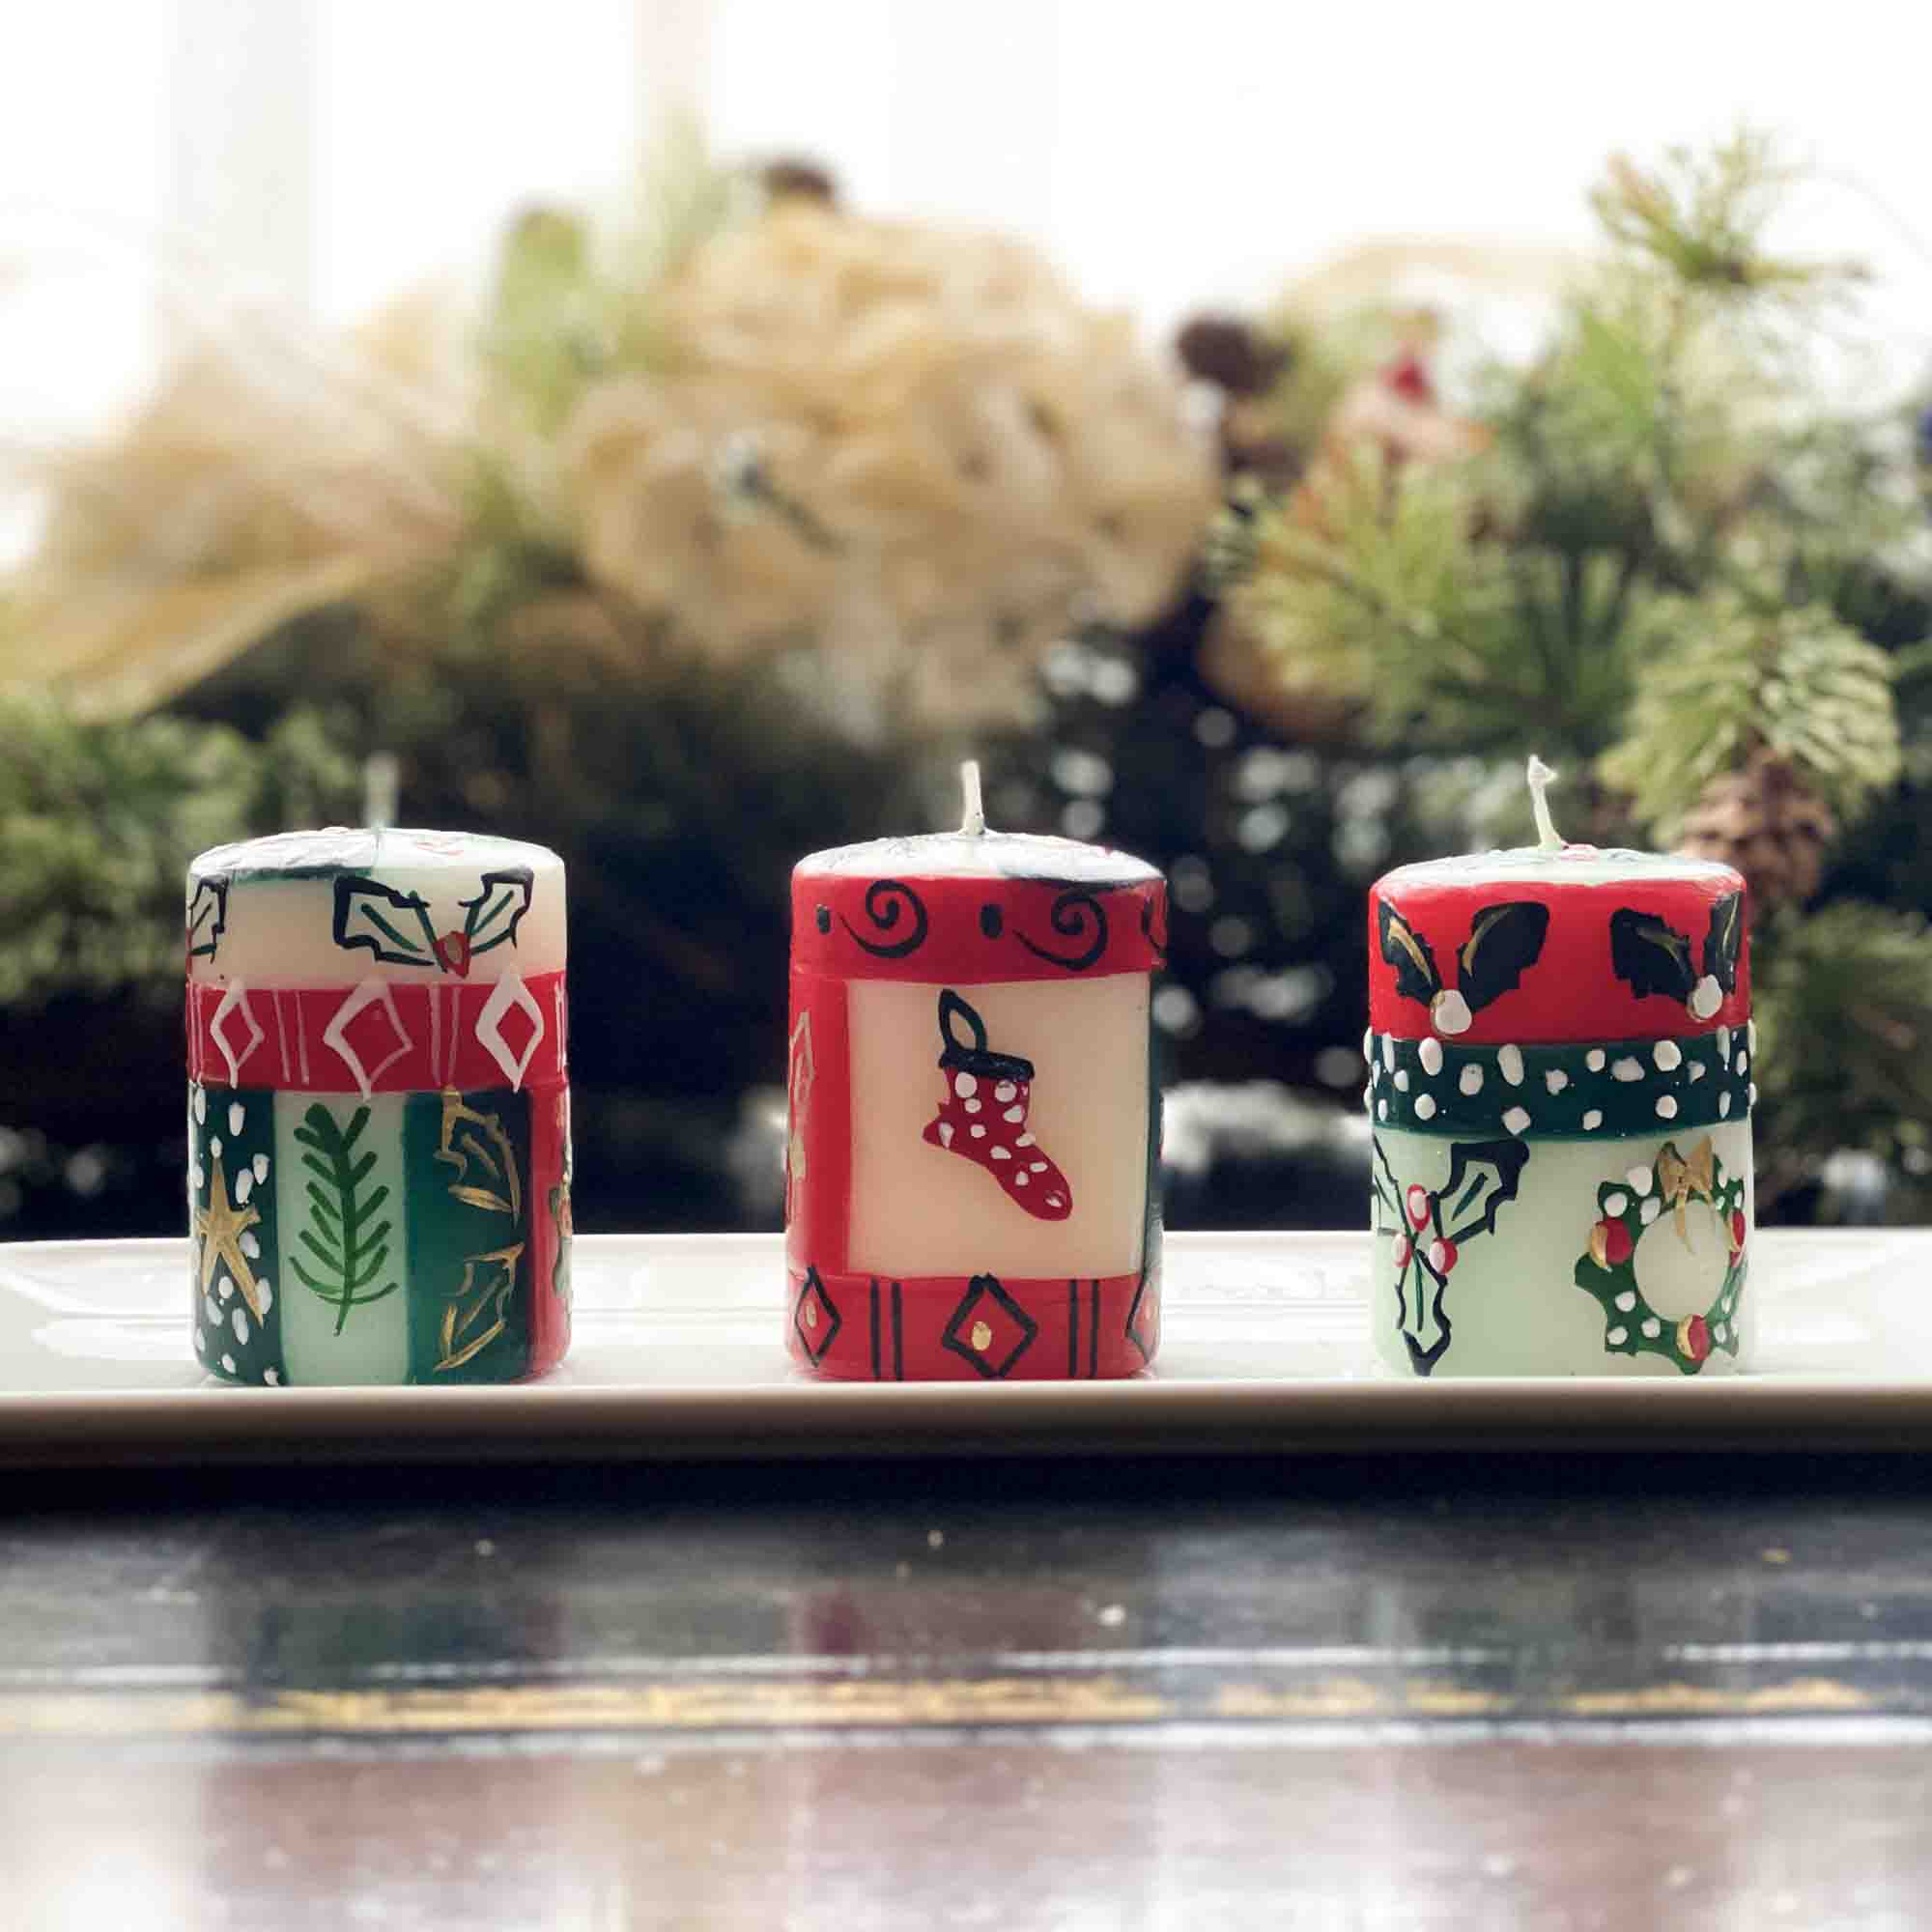 Christmas Hand-Painted Votive Candles, Boxed Set of 3 (Ukhisimusi Design)